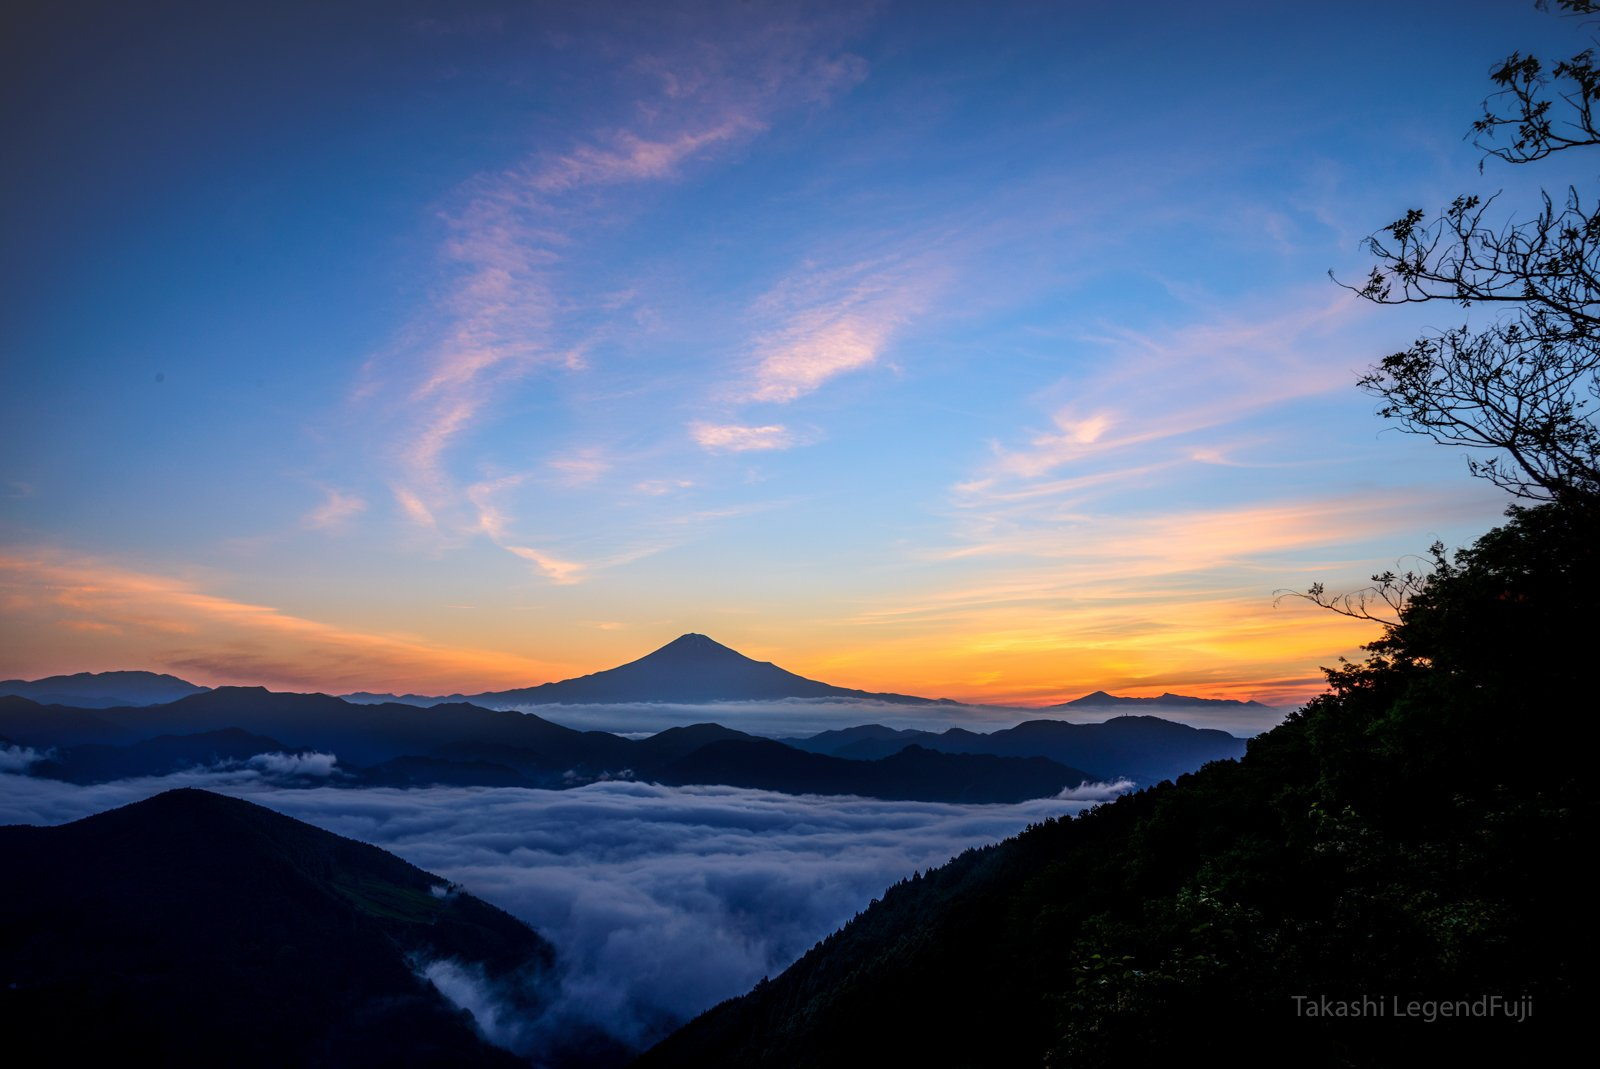 fuji,mountain,Japan,cloud,sky,orange,pink,blue,valley,beautiful,sea of cloud,, Takashi